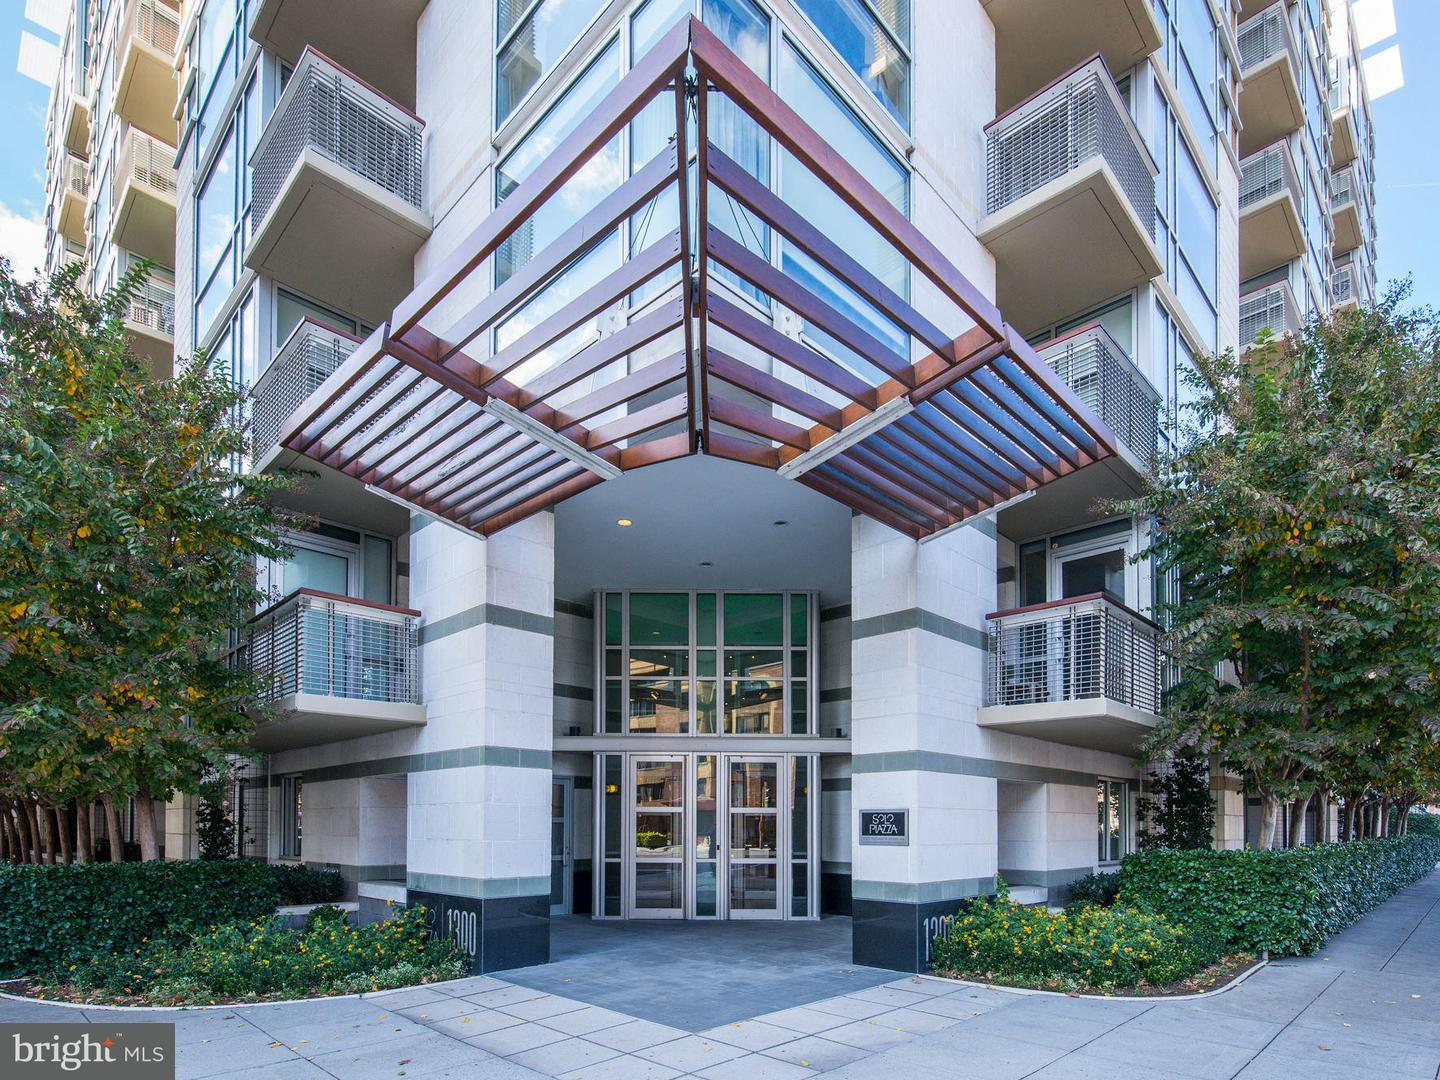 Single Family for Sale at 1300 13th St NW #107 Washington, District Of Columbia 20005 United States